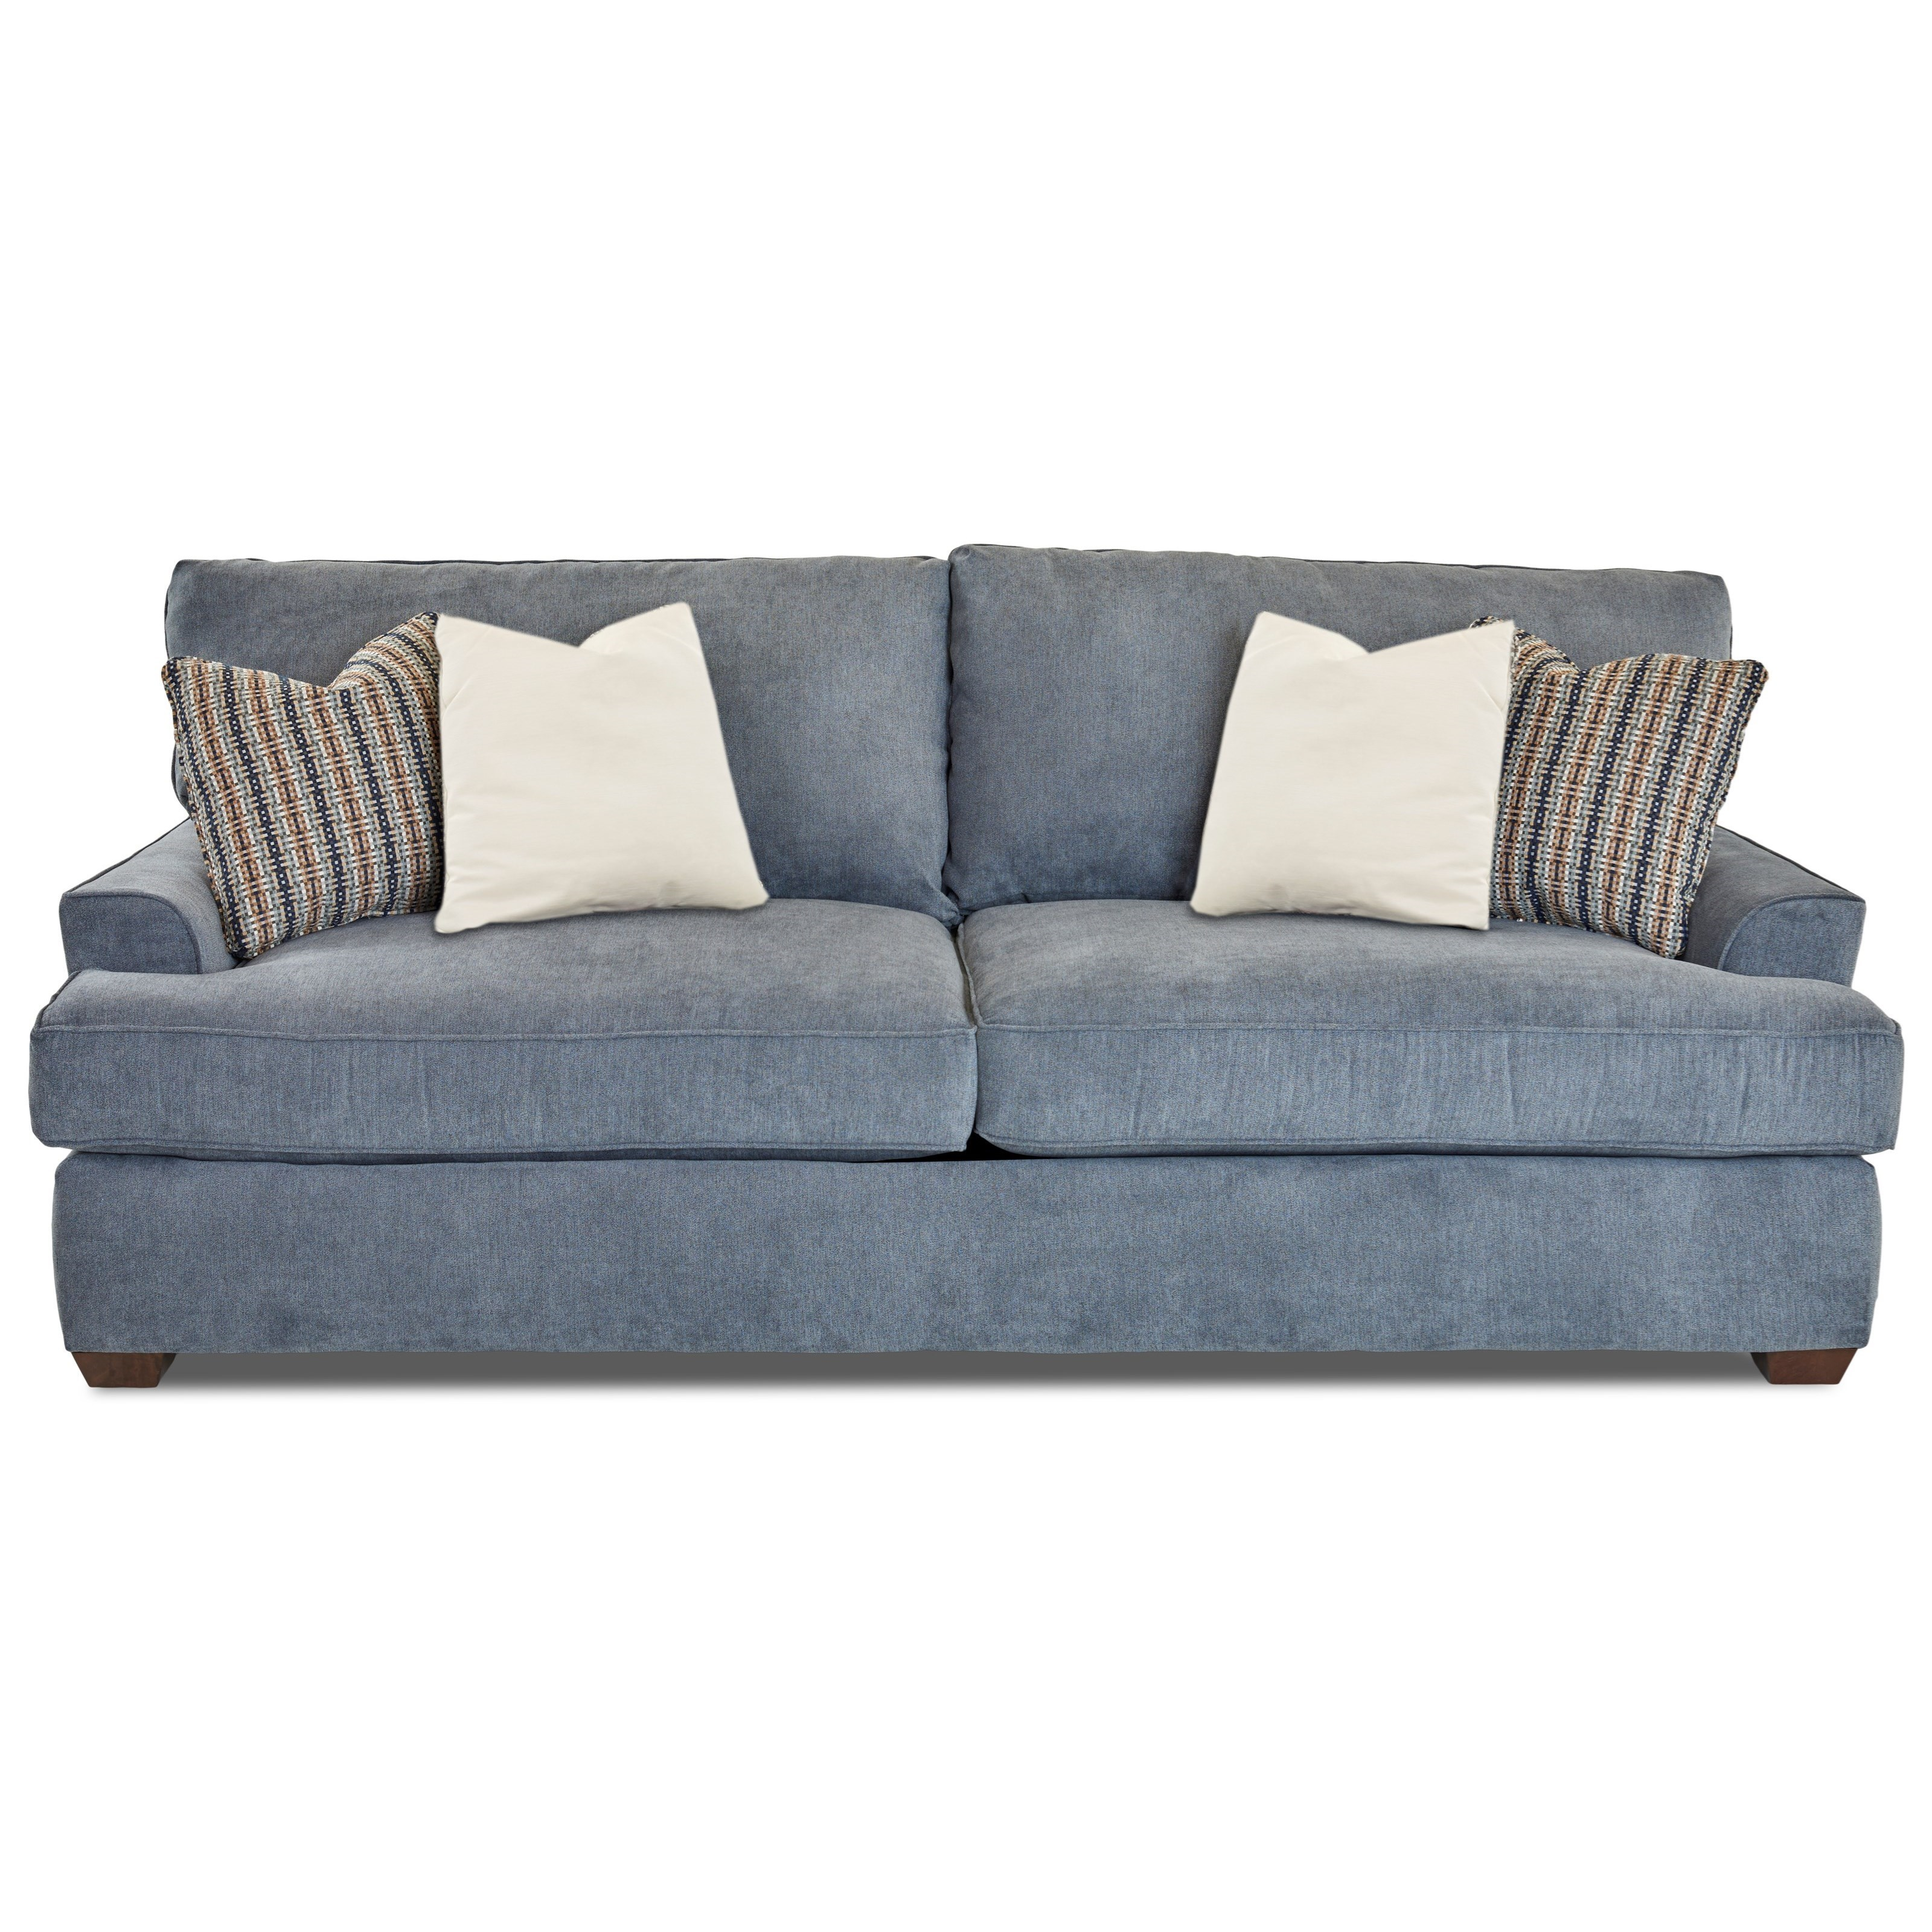 Klaussner McMillan Casual Two Seat Sofa With Extra Deep Seats | Colderu0027s  Furniture And Appliance | Sofas